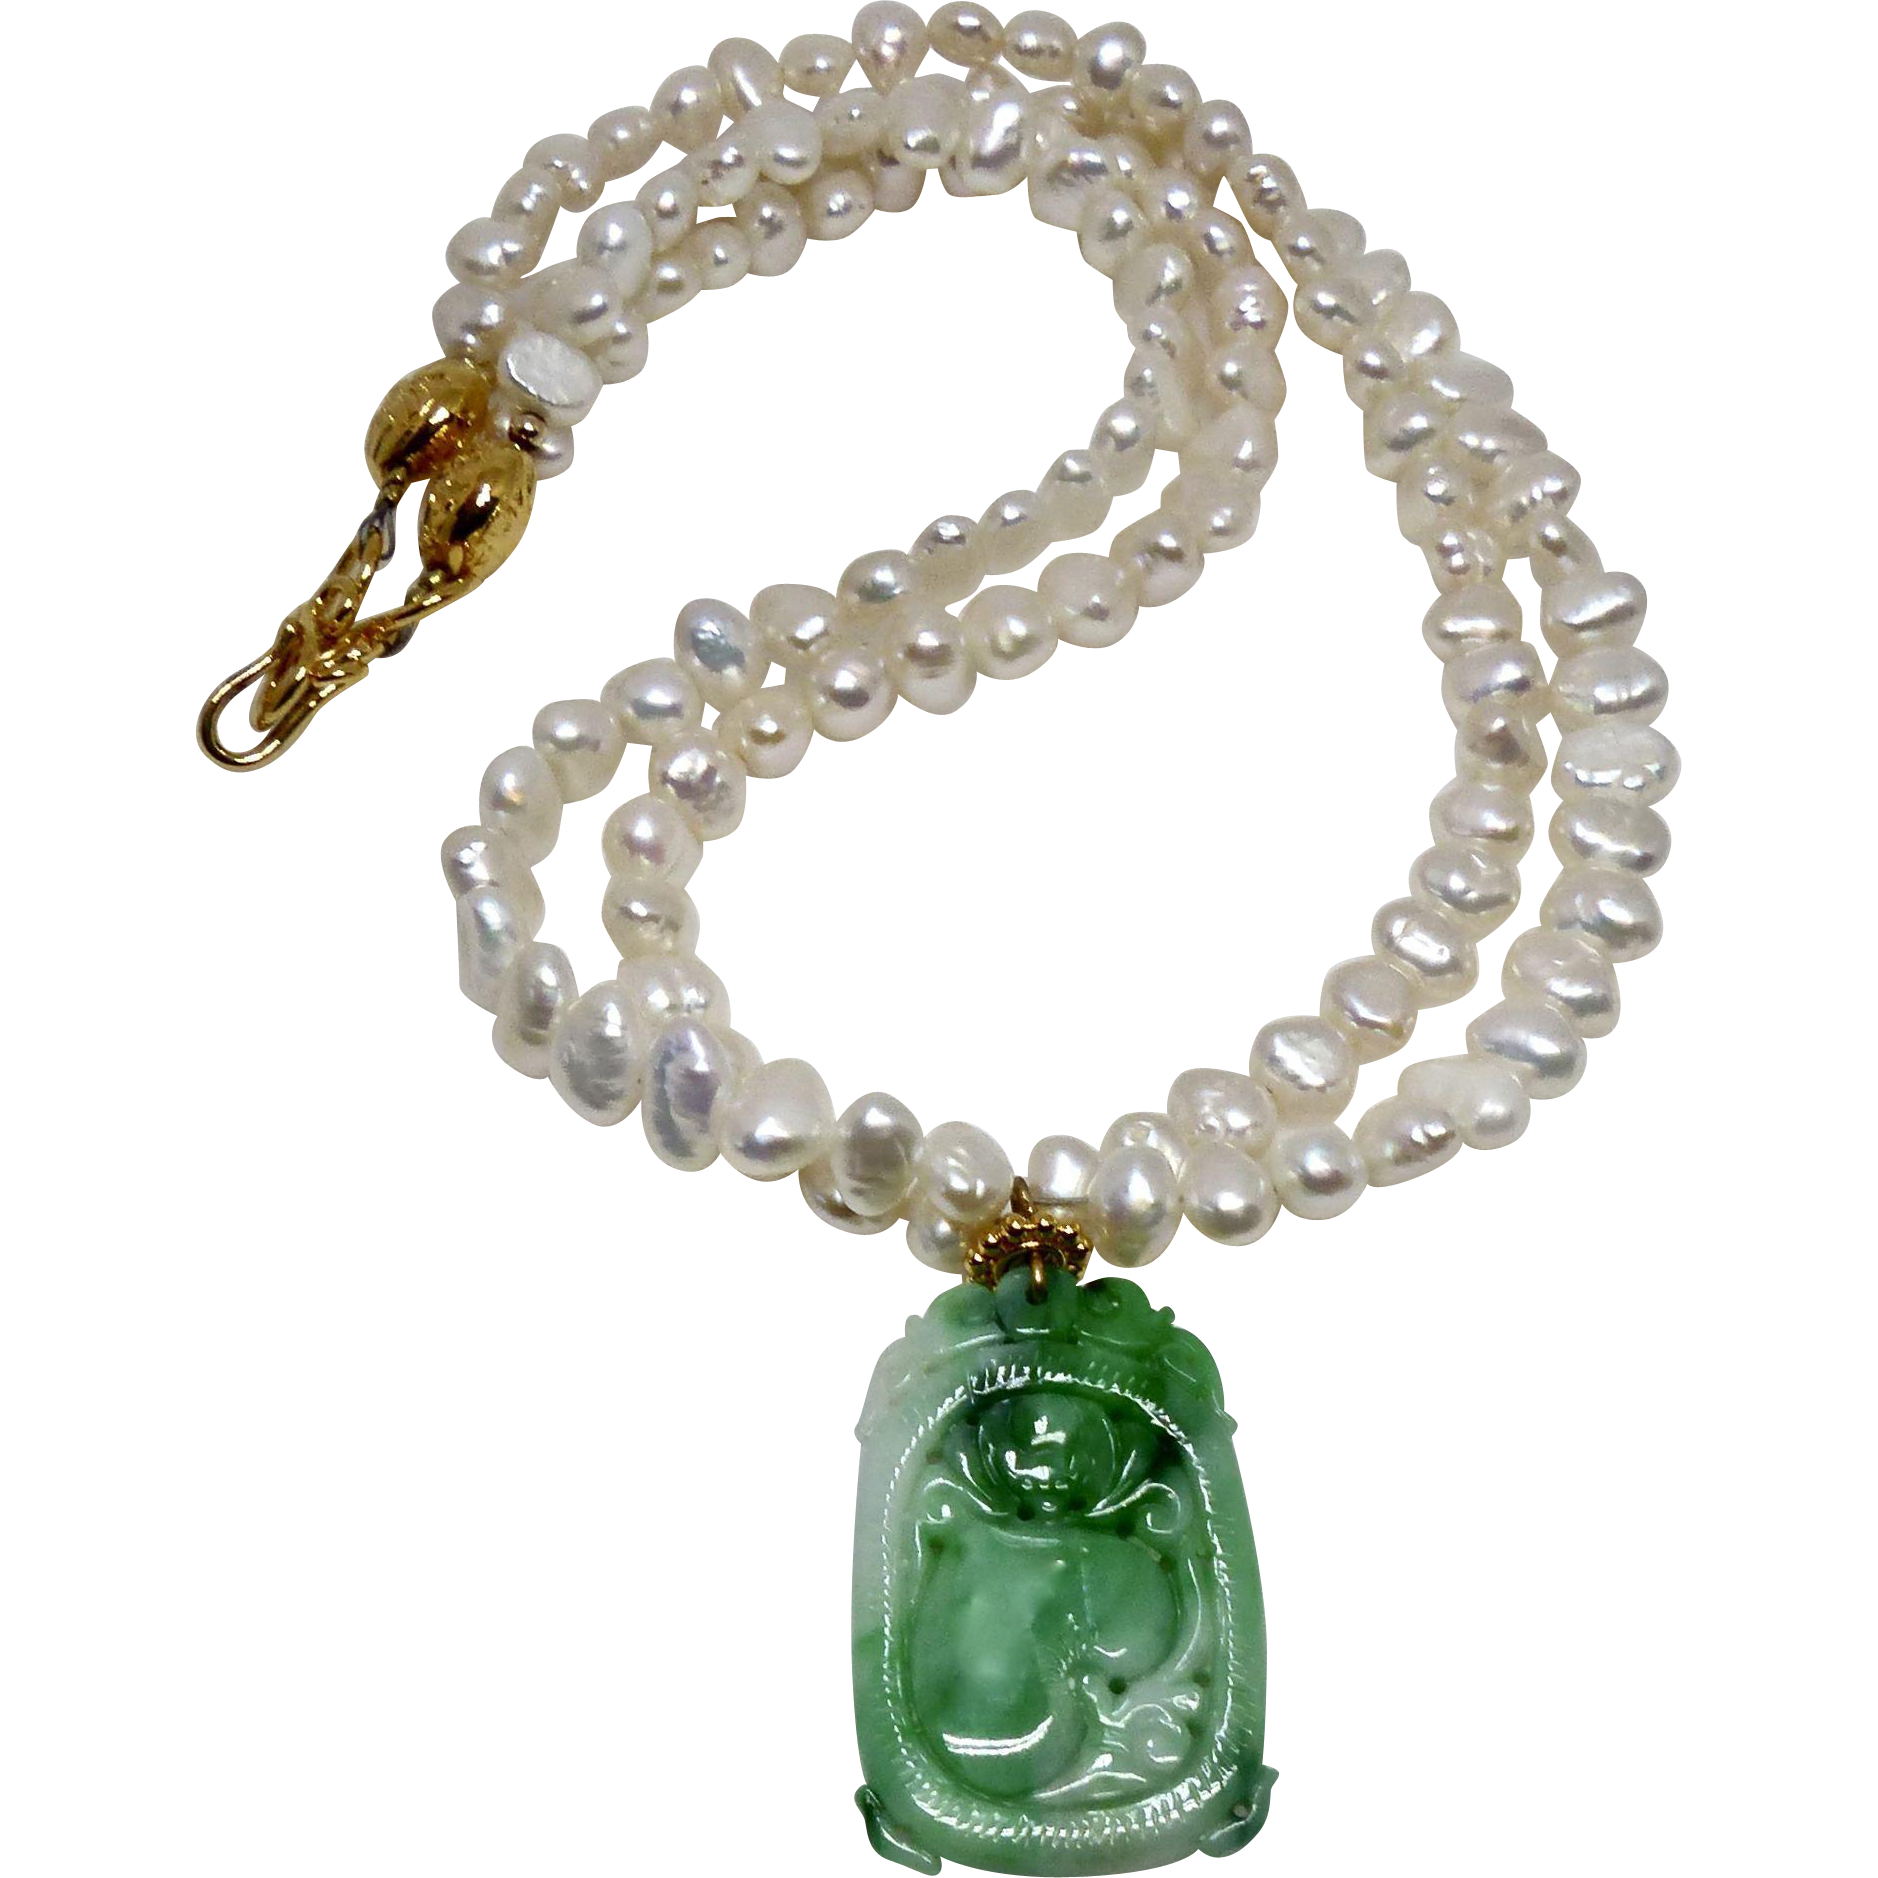 l necklace mawsitsit beautiful necklaces id at sit modernist maw sale mza for jade rare beads j natural more jewelry